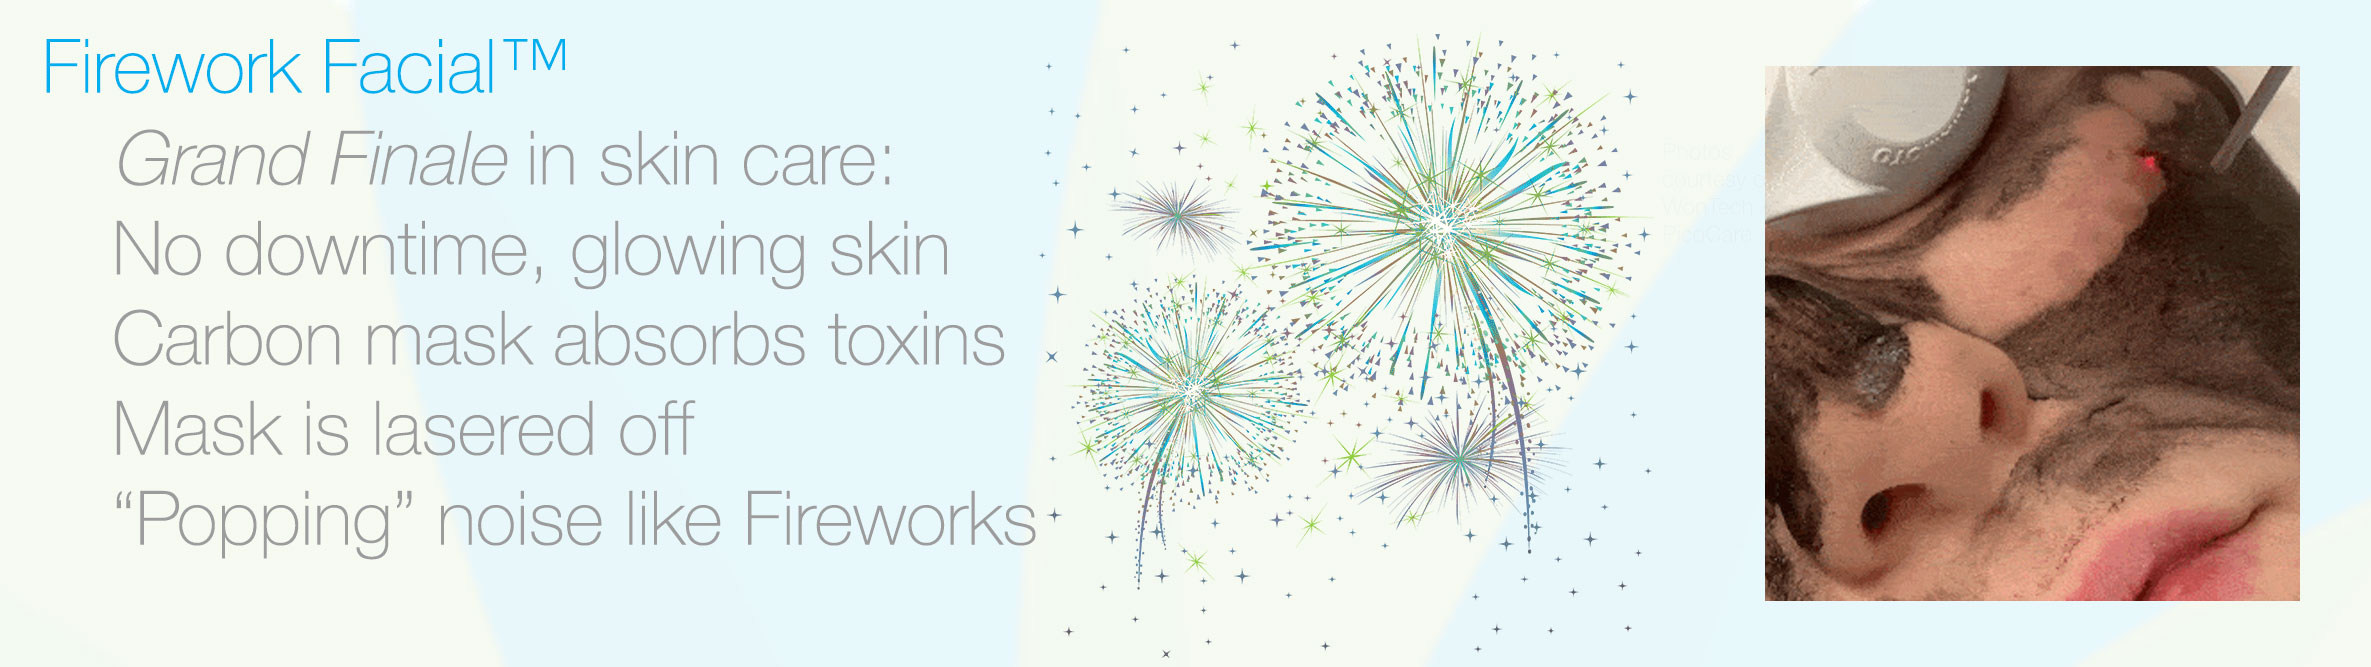 Firework Facial uses a carbon mask to absorb toxins and oils, and then the mask is lasered off which sounds like fireworks popping